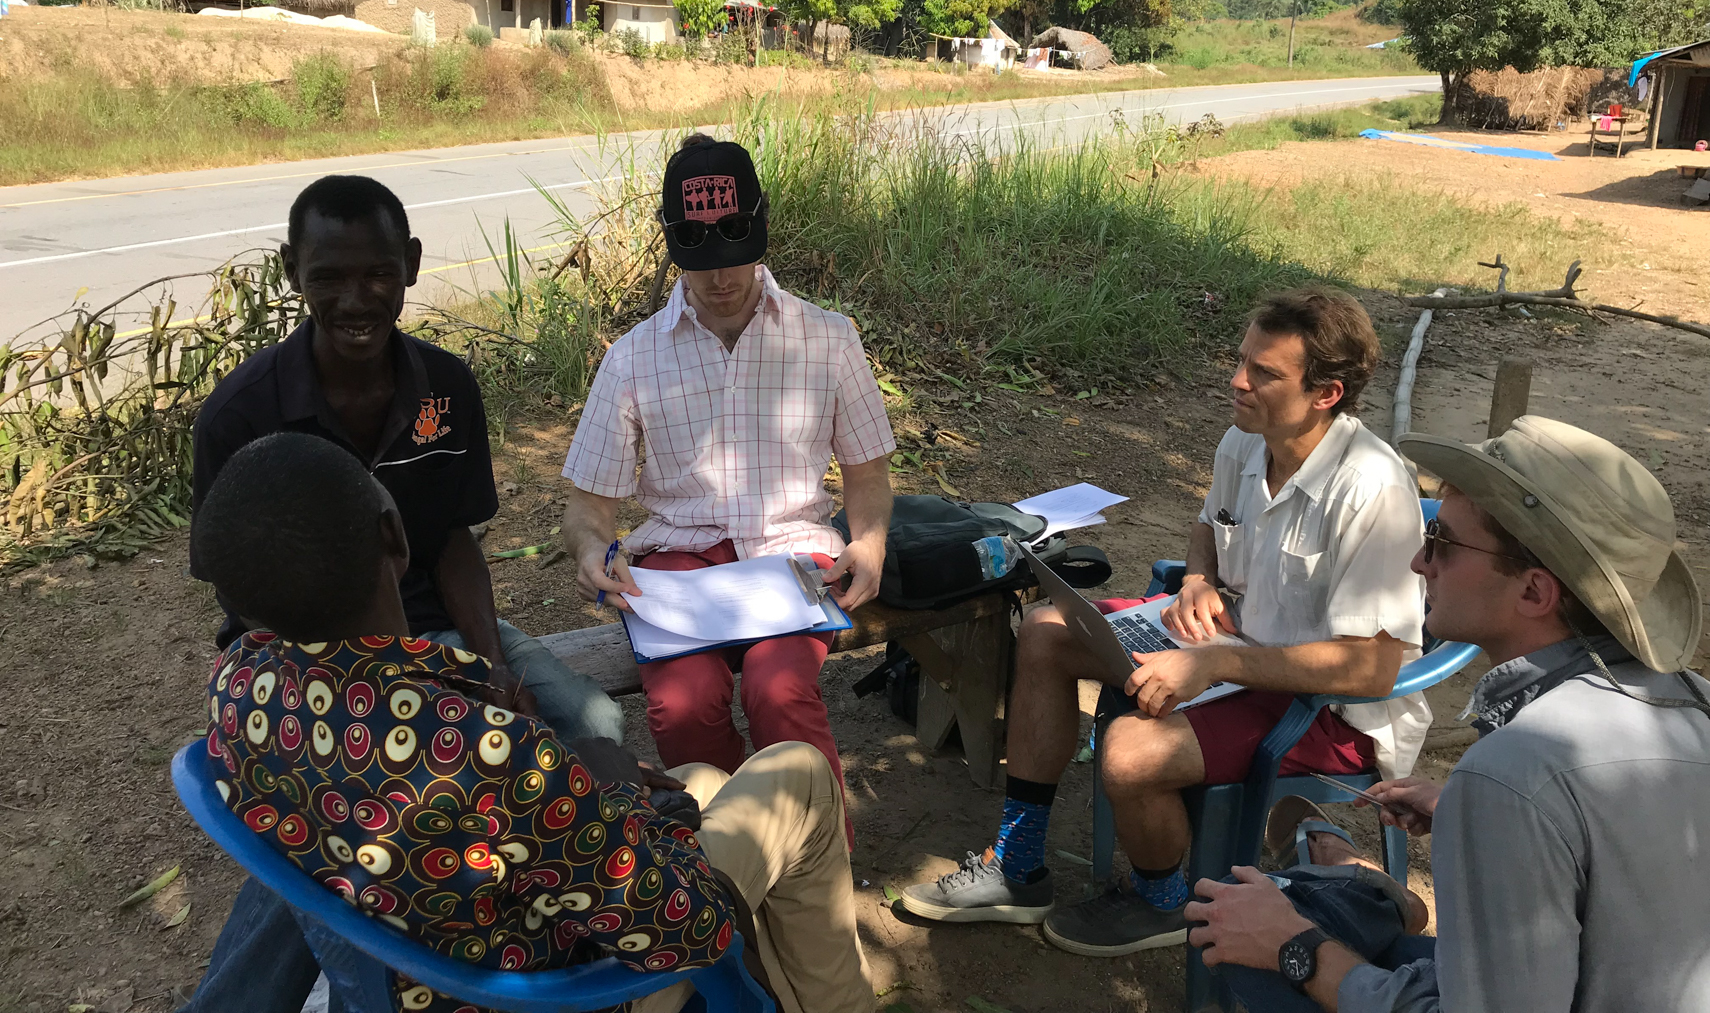 Dr. Dan Kelly in Liberia (second from right), December 2019. (Photo Courtesy of Dan Kelly)